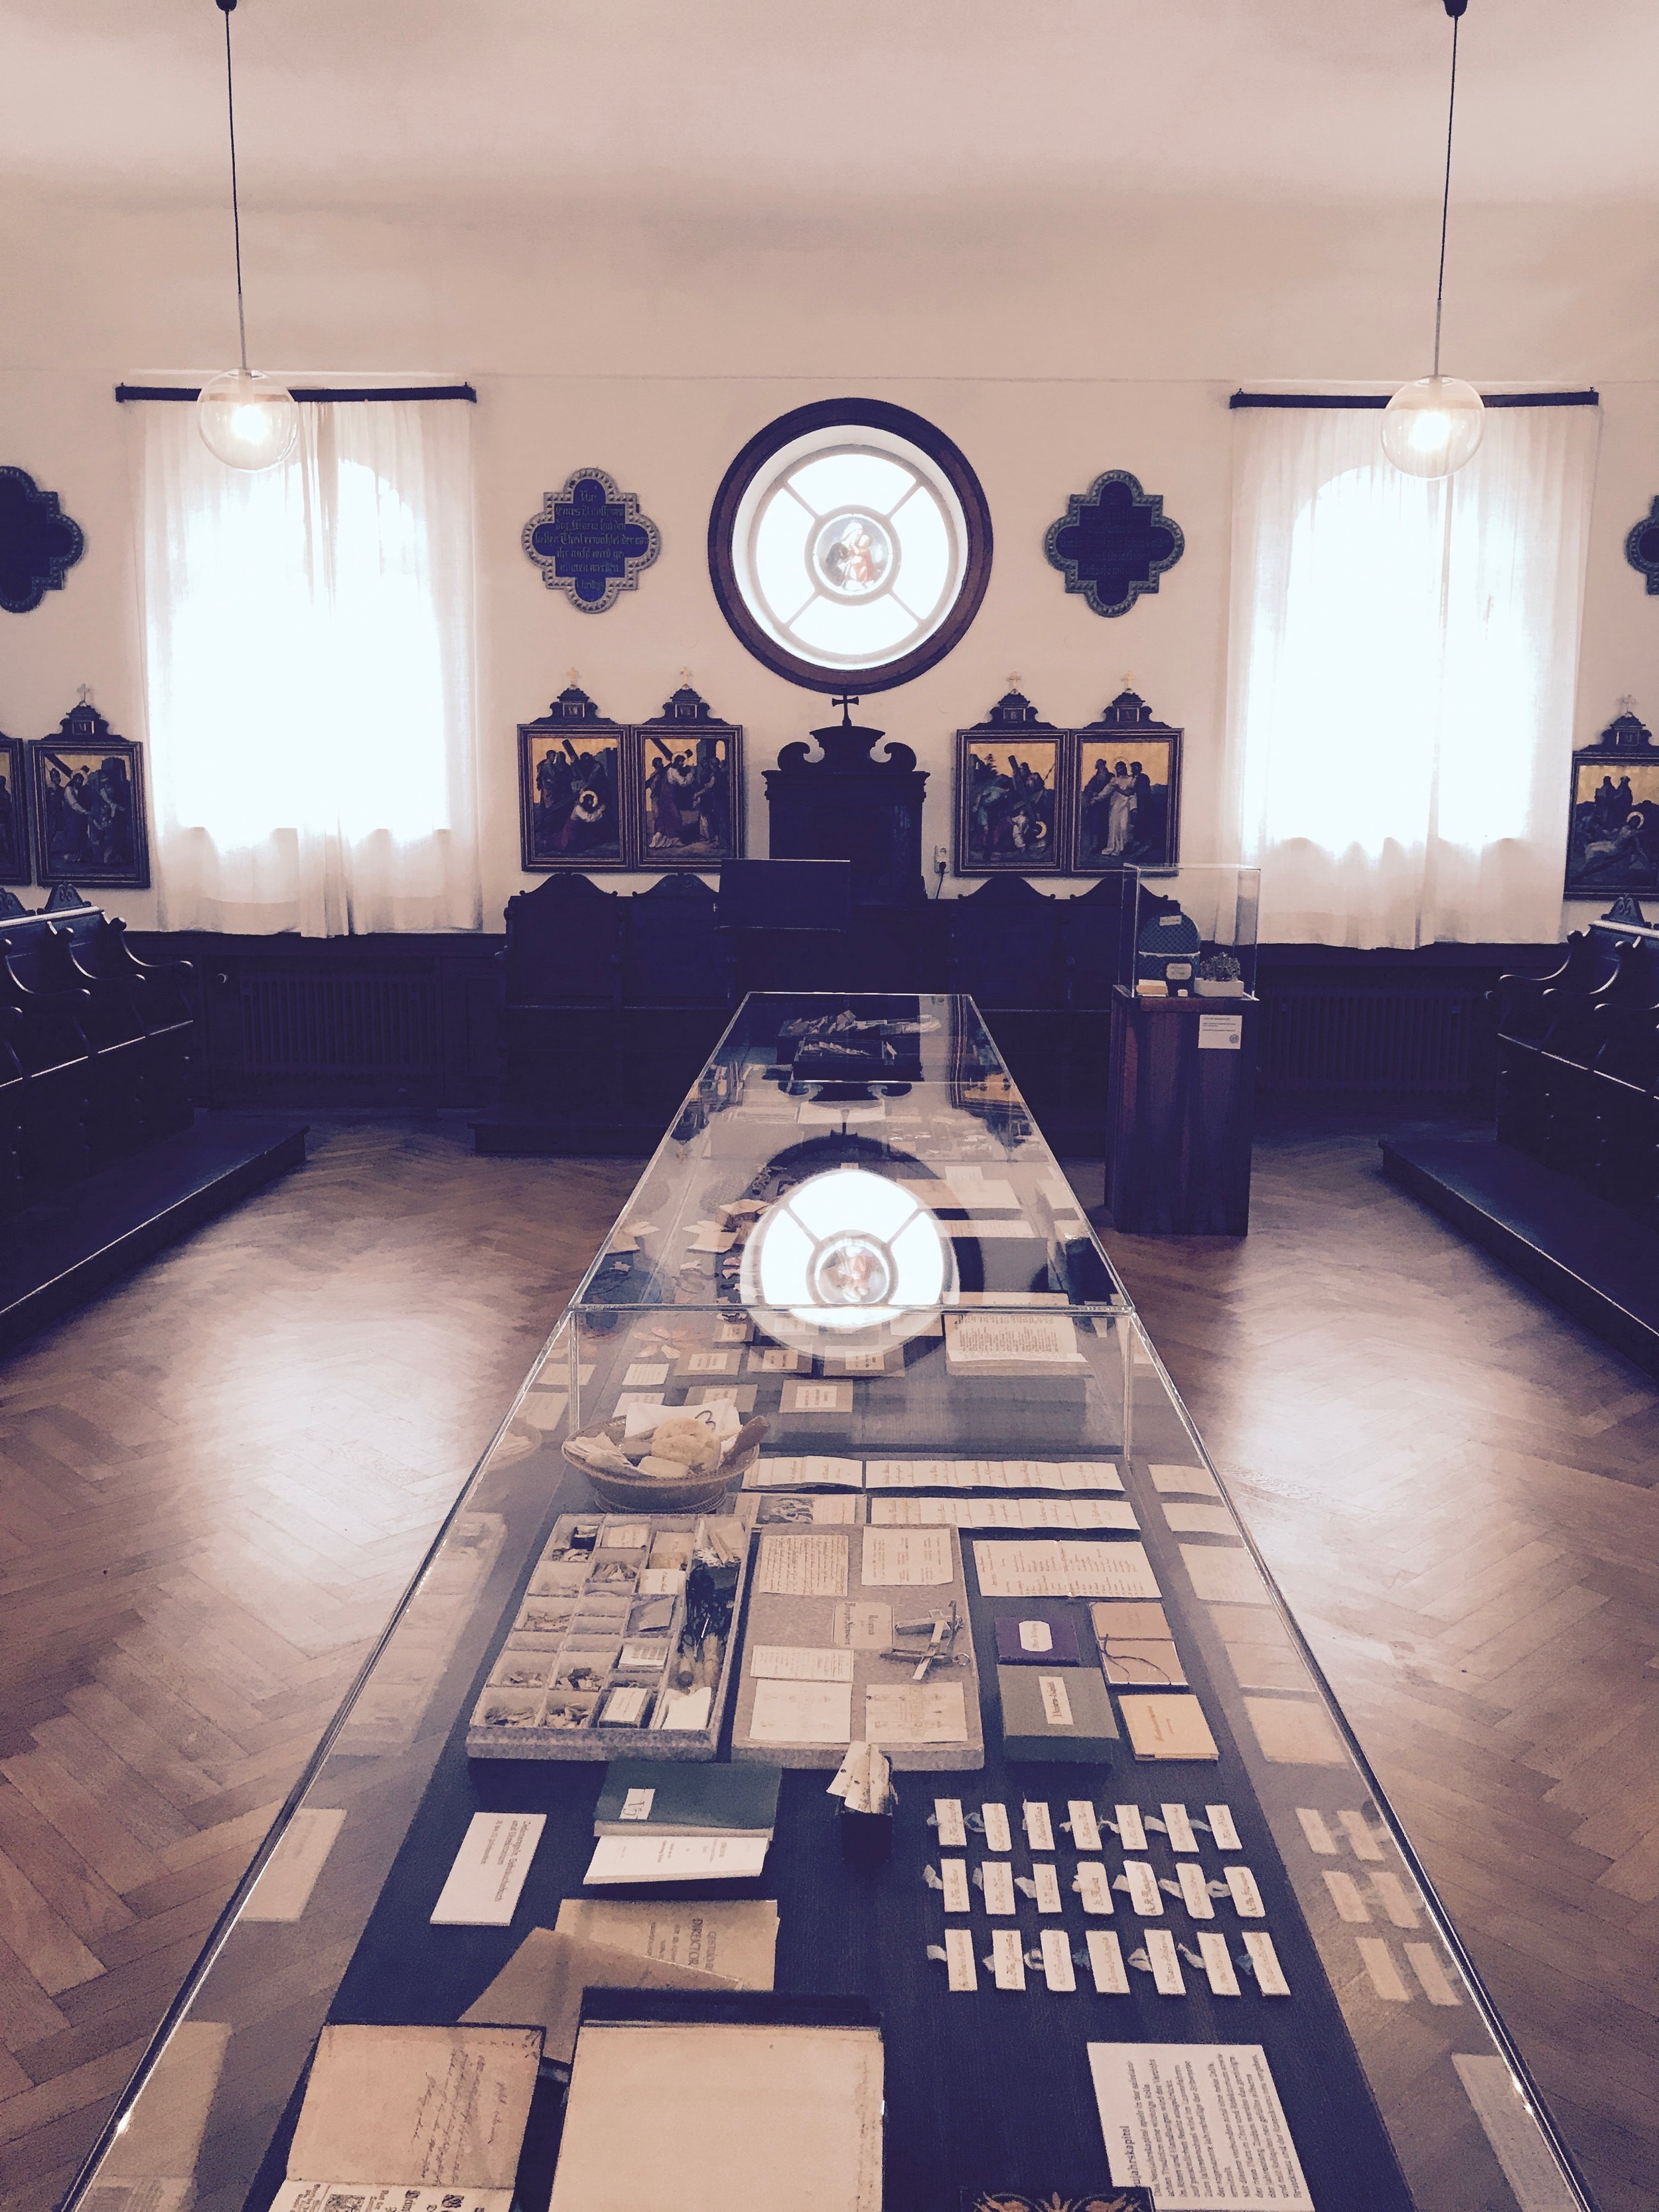 the display case in the centre of the oratory